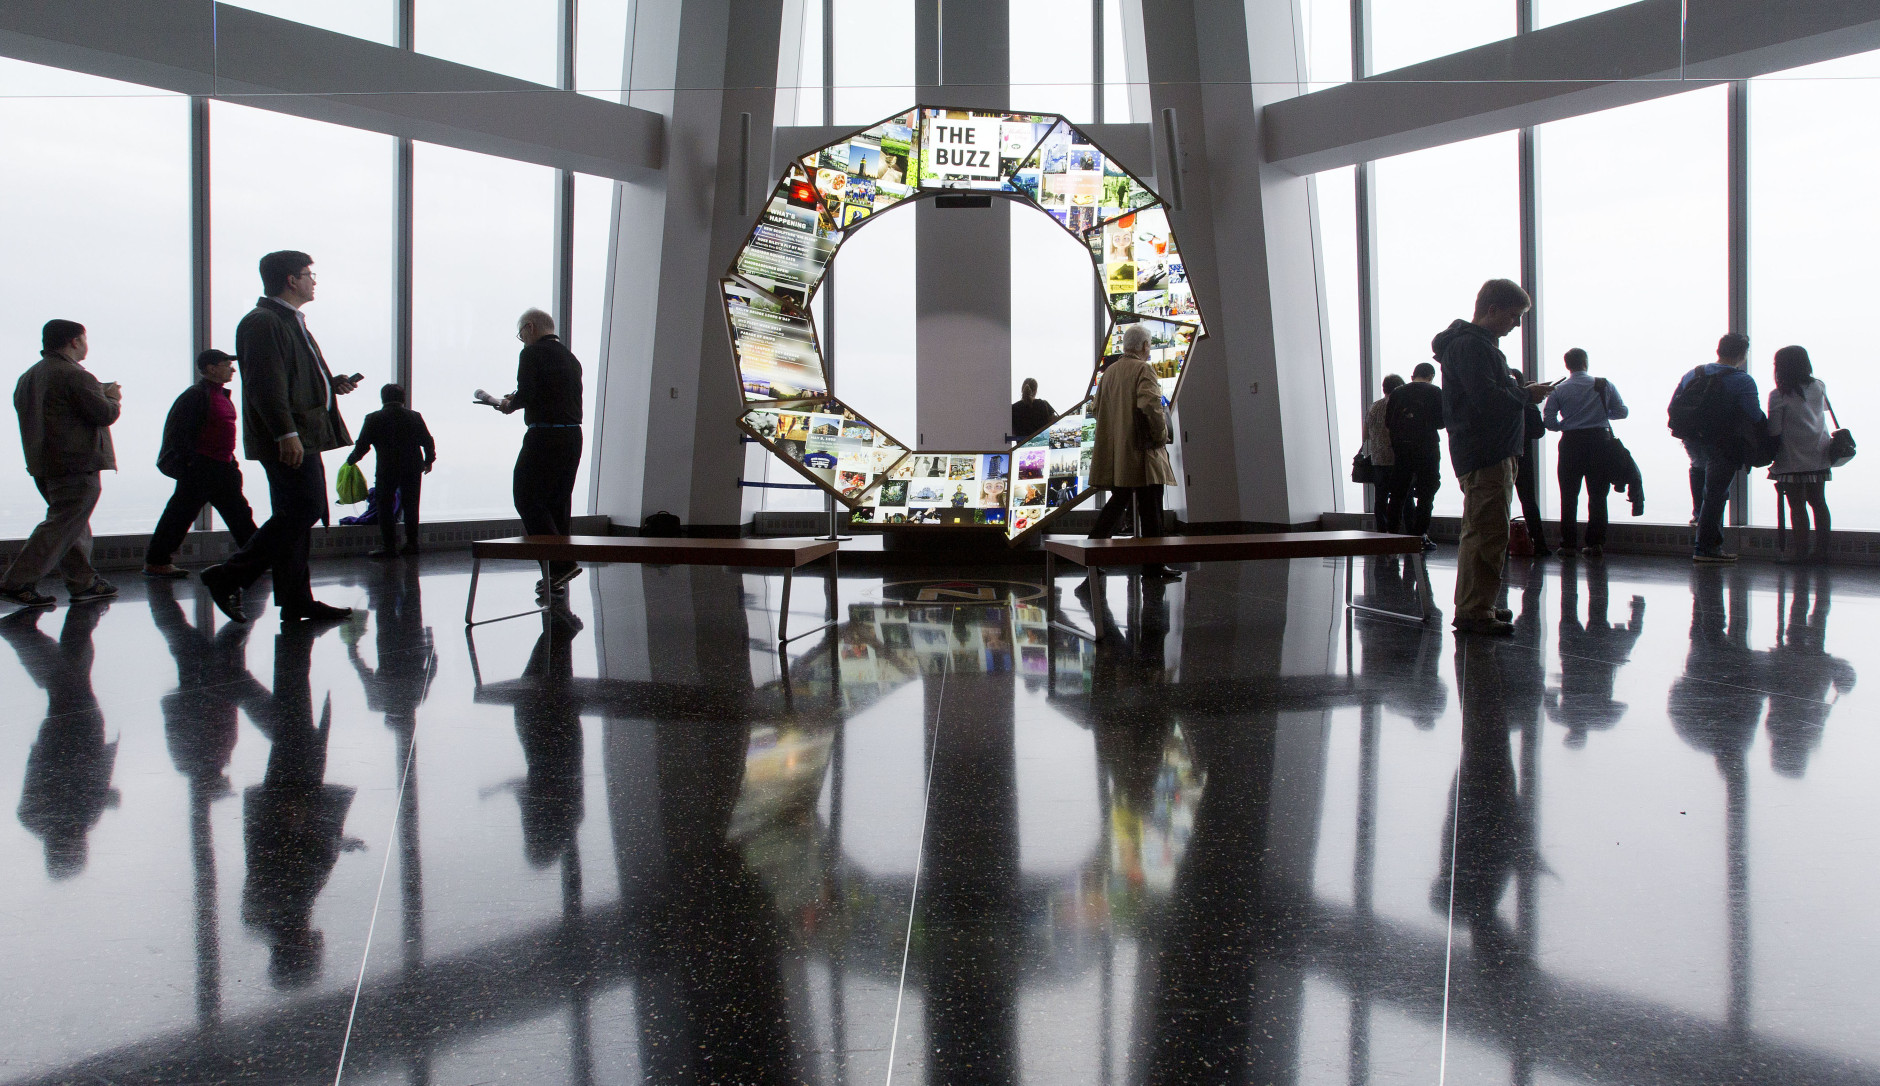 Visitors to One World Observatory take in views of New York and New Jersey, Tuesday, May 24, 2016, in New York. It's been a year since the observatory at One World Trade Center opened to the public. (AP Photo/Mark Lennihan)